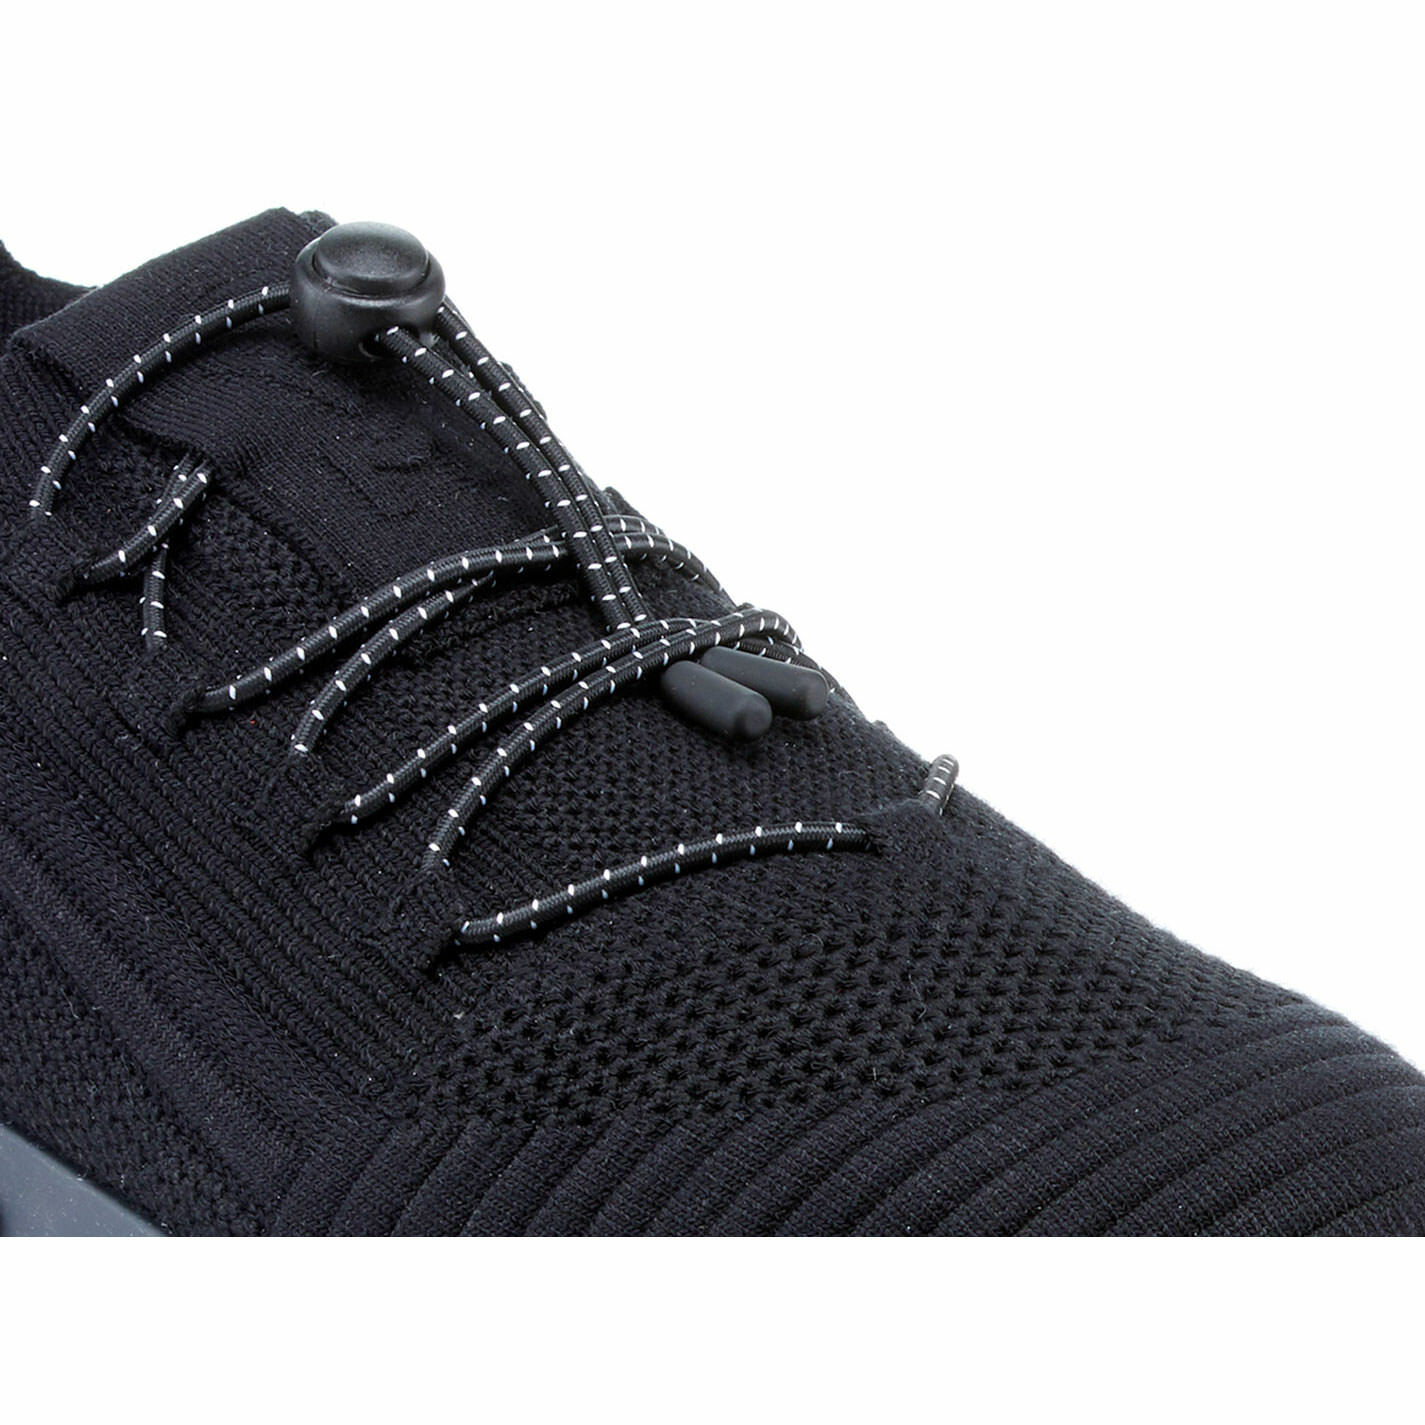 Knit black lace-up running shoes